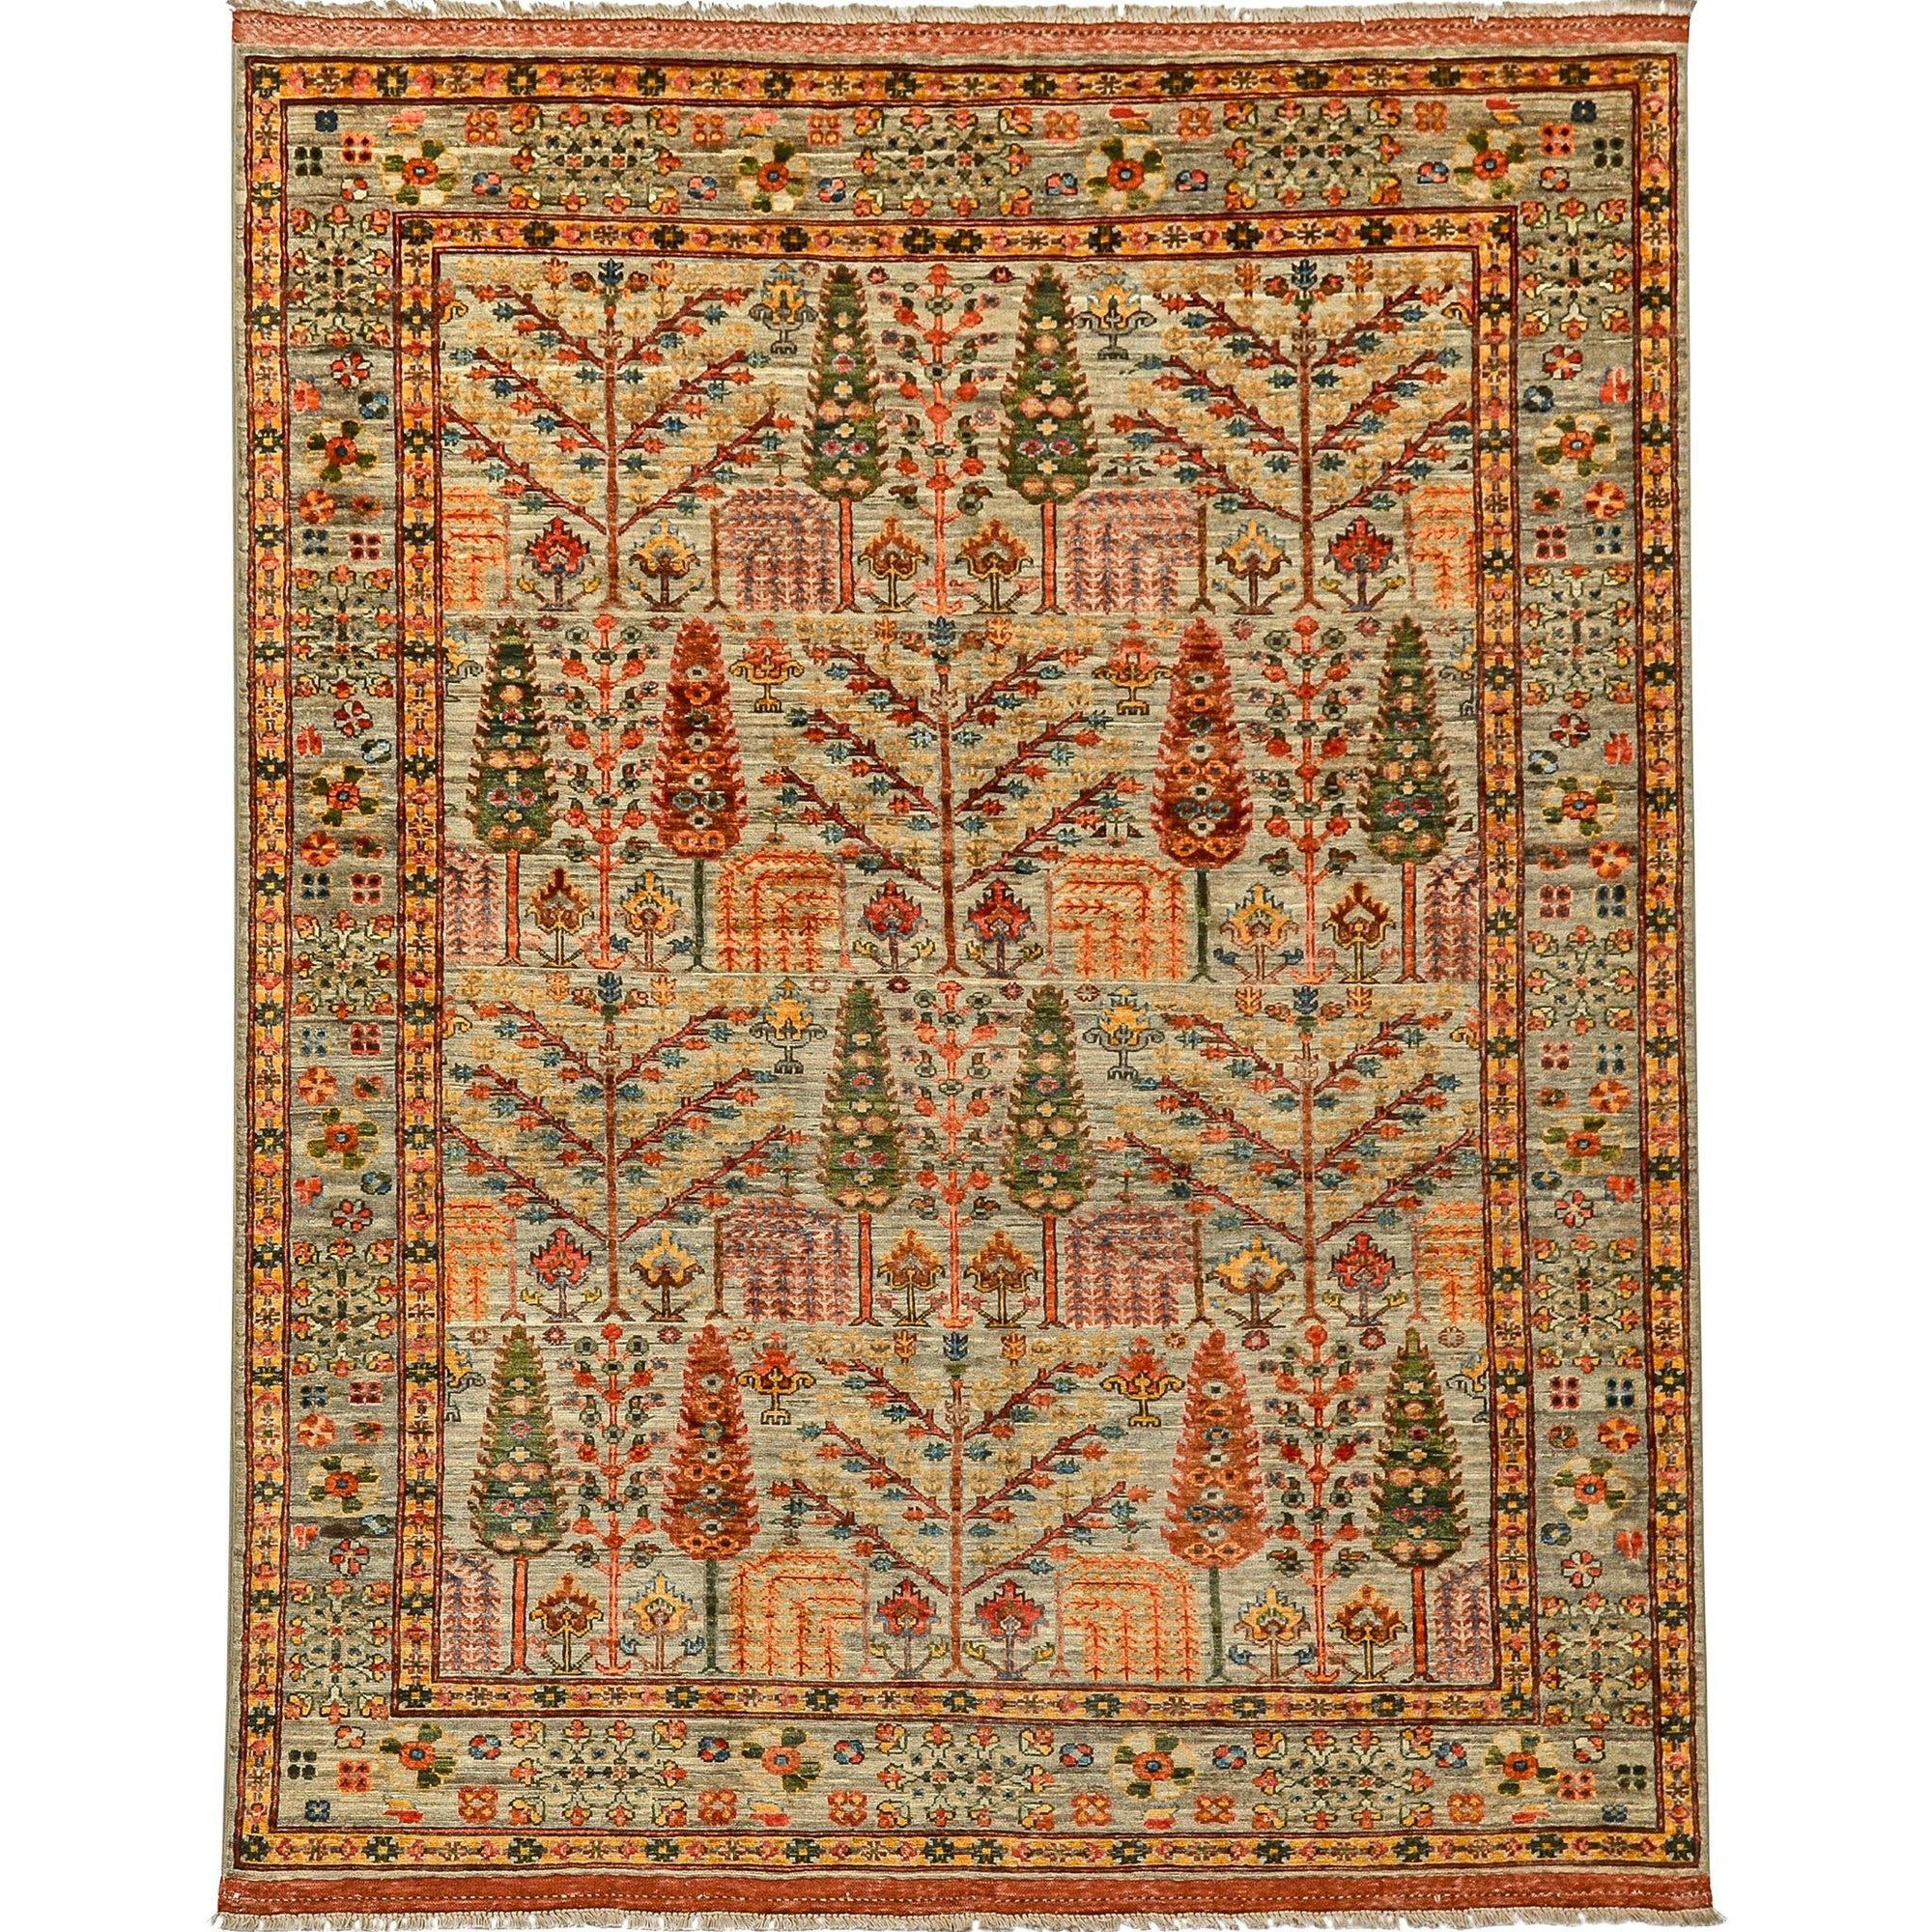 Fine Hand-knotted Wool Rug 174cm x 229cm Persian-Rug | House-of-Haghi | NewMarket | Auckland | NZ | Handmade Persian Rugs | Hand Knotted Persian Rugs